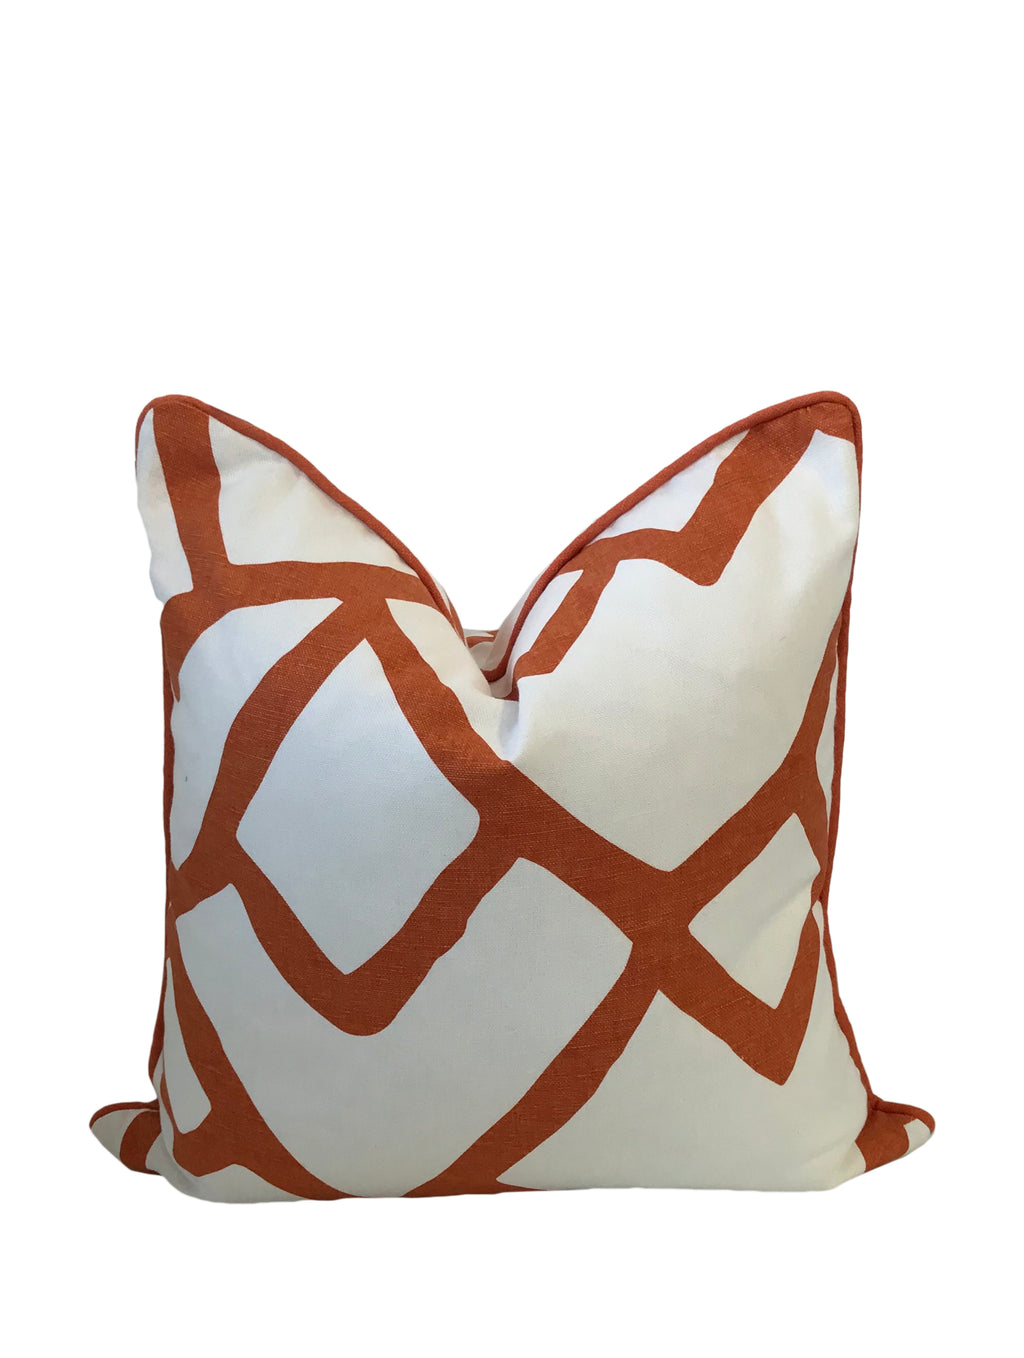 Schumacher Zimba Orange Fabric Throw Pillow